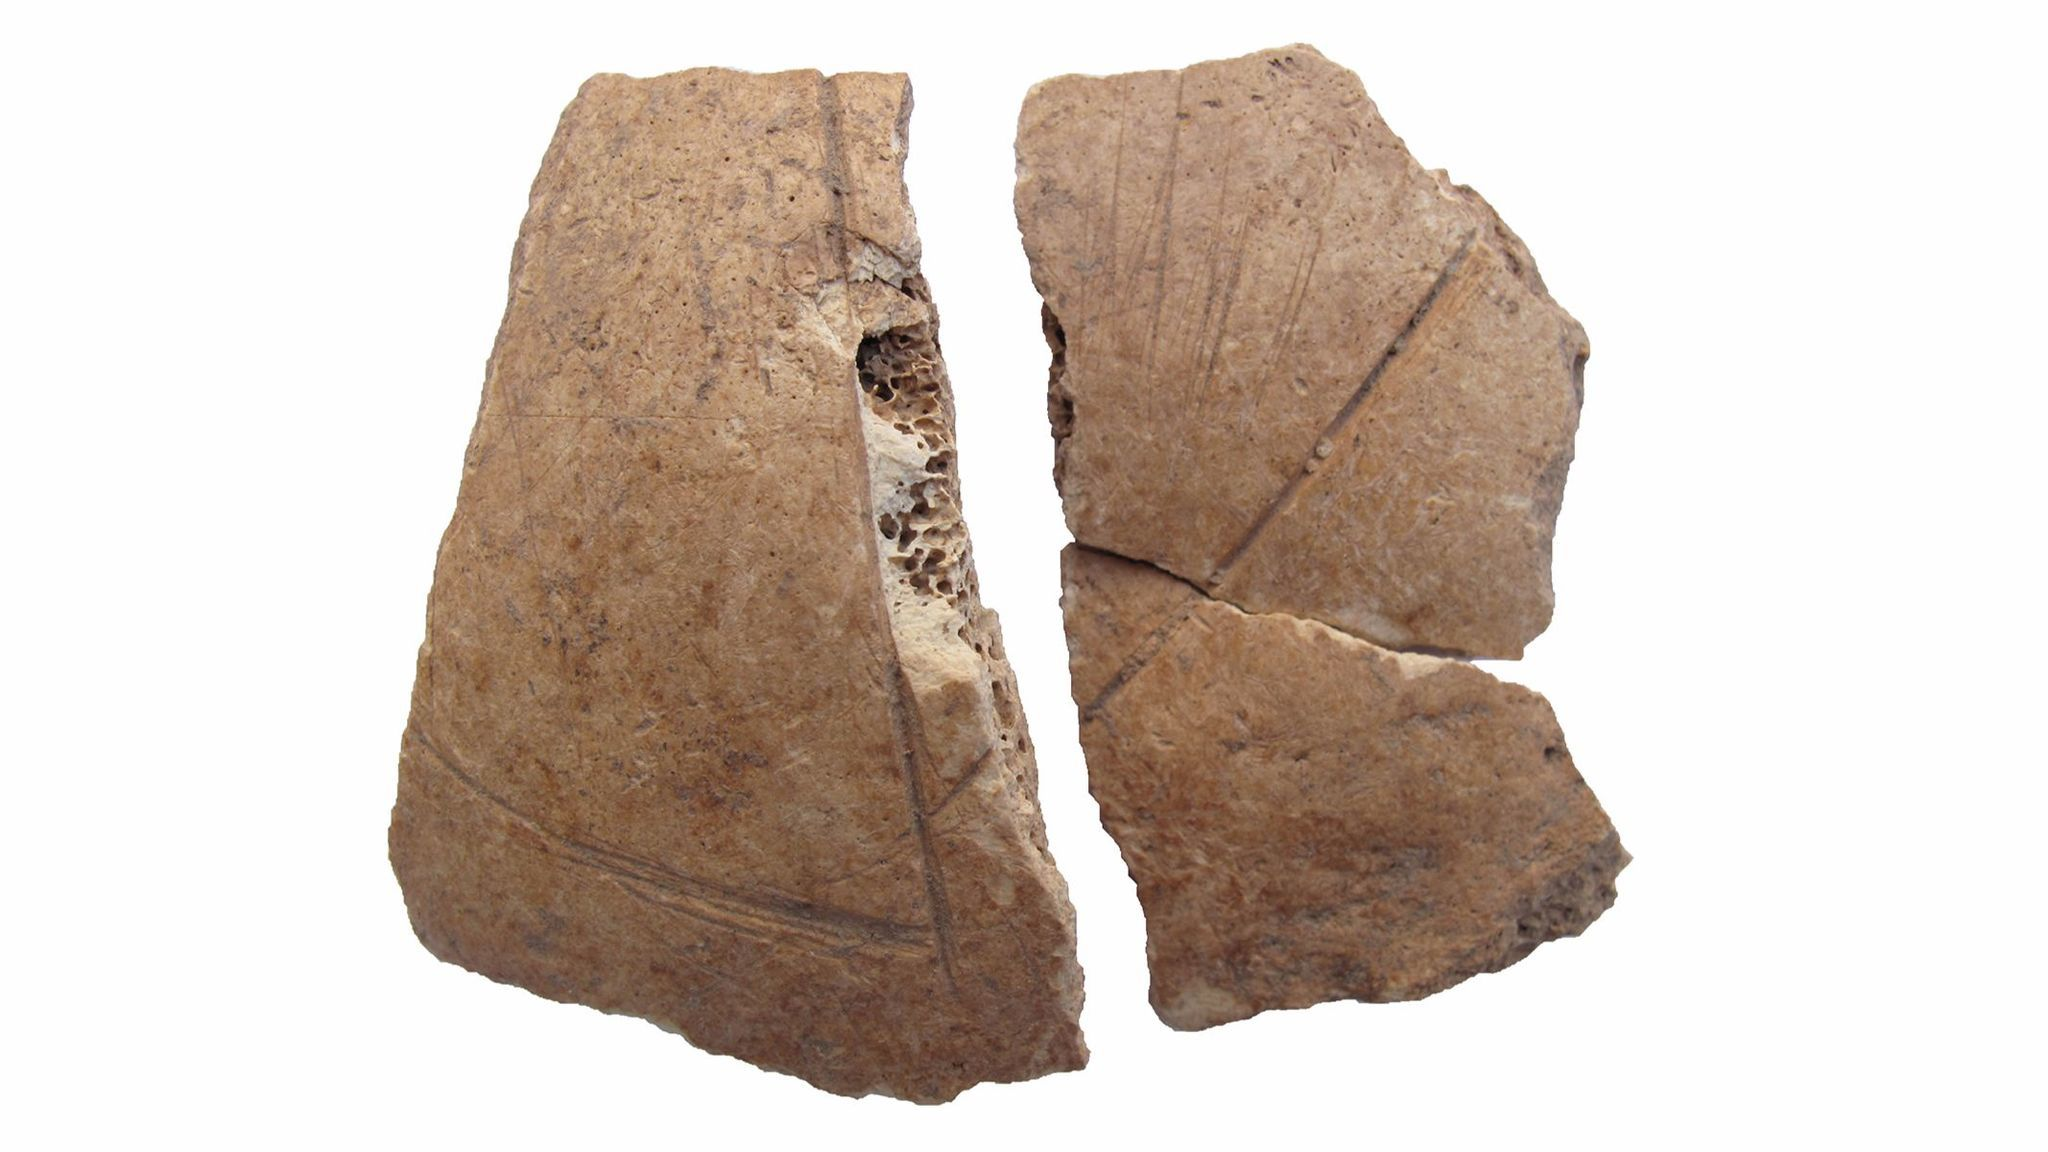 Frontal bone fragment of a skull with carvings and cut marks.